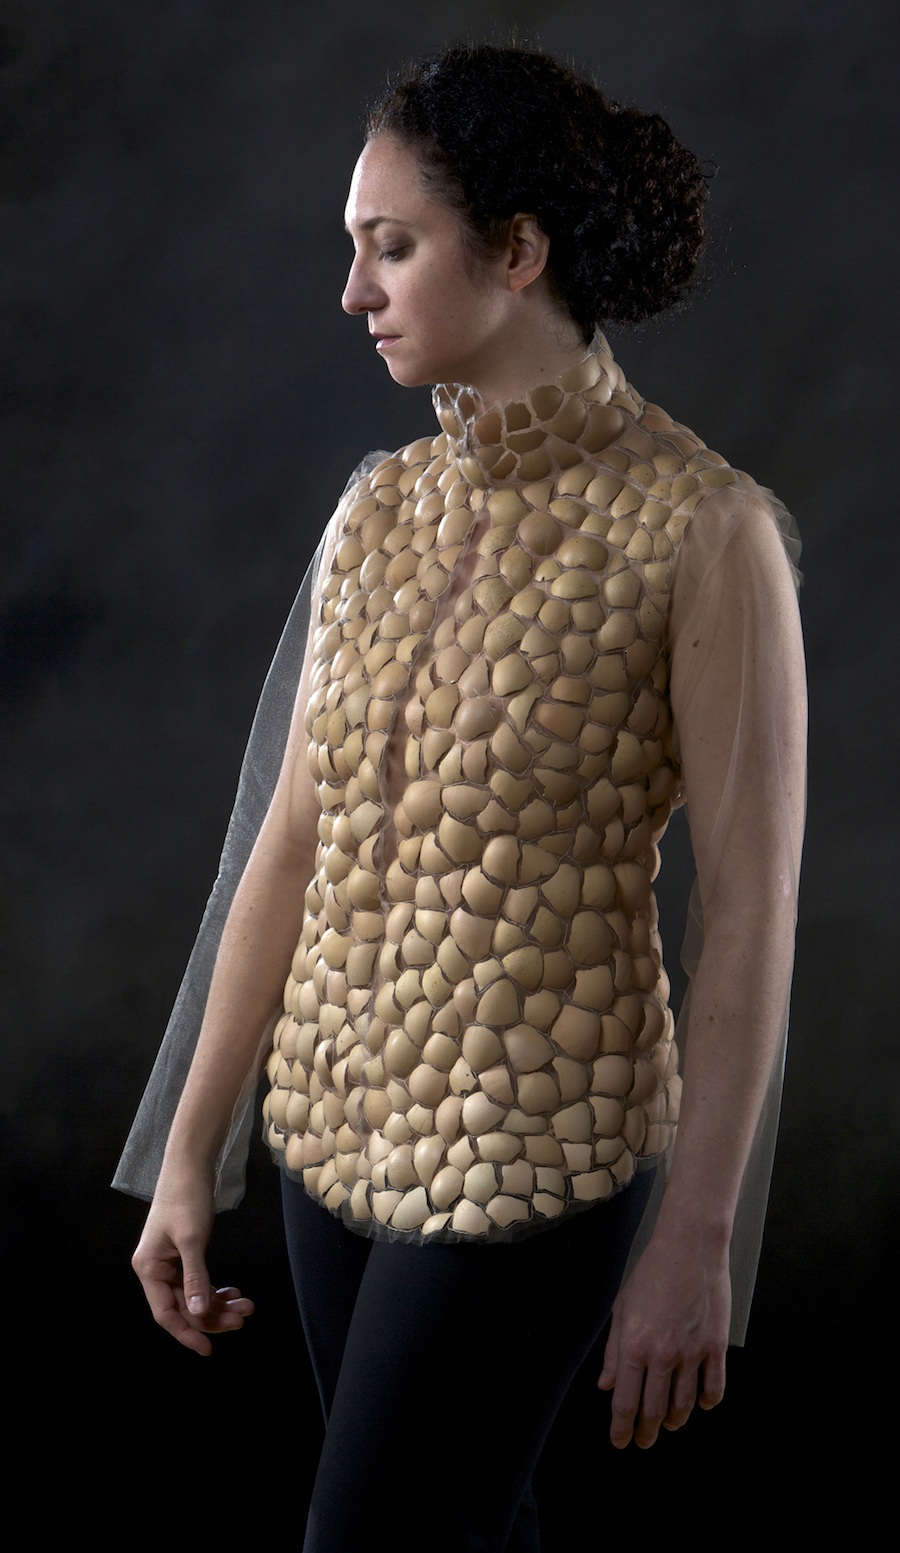 "Above: Erika Diamond,  Eggshell Garment for Hugging II , eggshells stitched between layers of tulle; hugs; 2015, Garment worn to record imprint of hugs; Performance pending. Photo: Zaire Kacz Photography. Below: Erika Diamond,  The ""Spider"" Vest,  hand-woven kevlar (bulletproof) thread bobbin-lace, 2018. Photo courtesy of the artist."